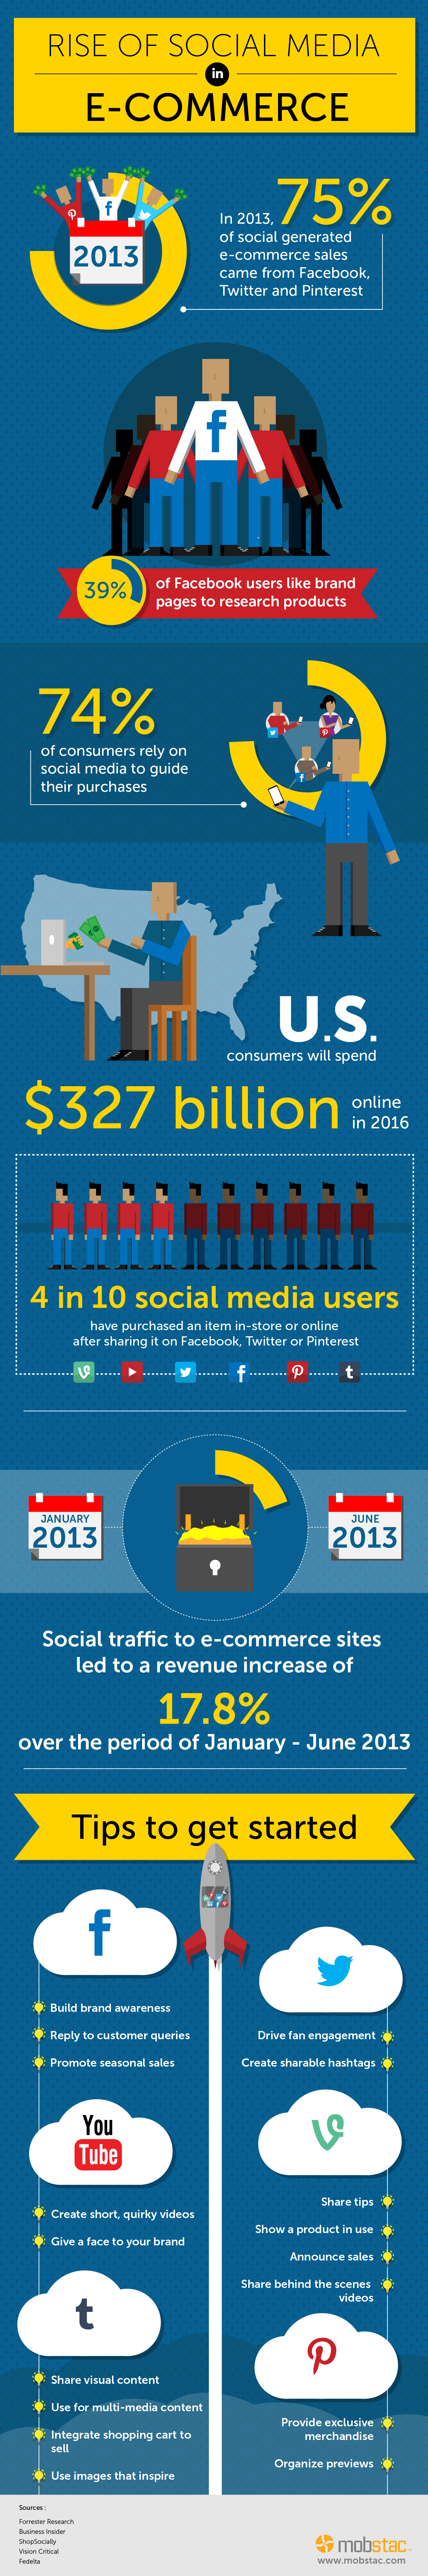 Rise of Social Media in Ecommerce